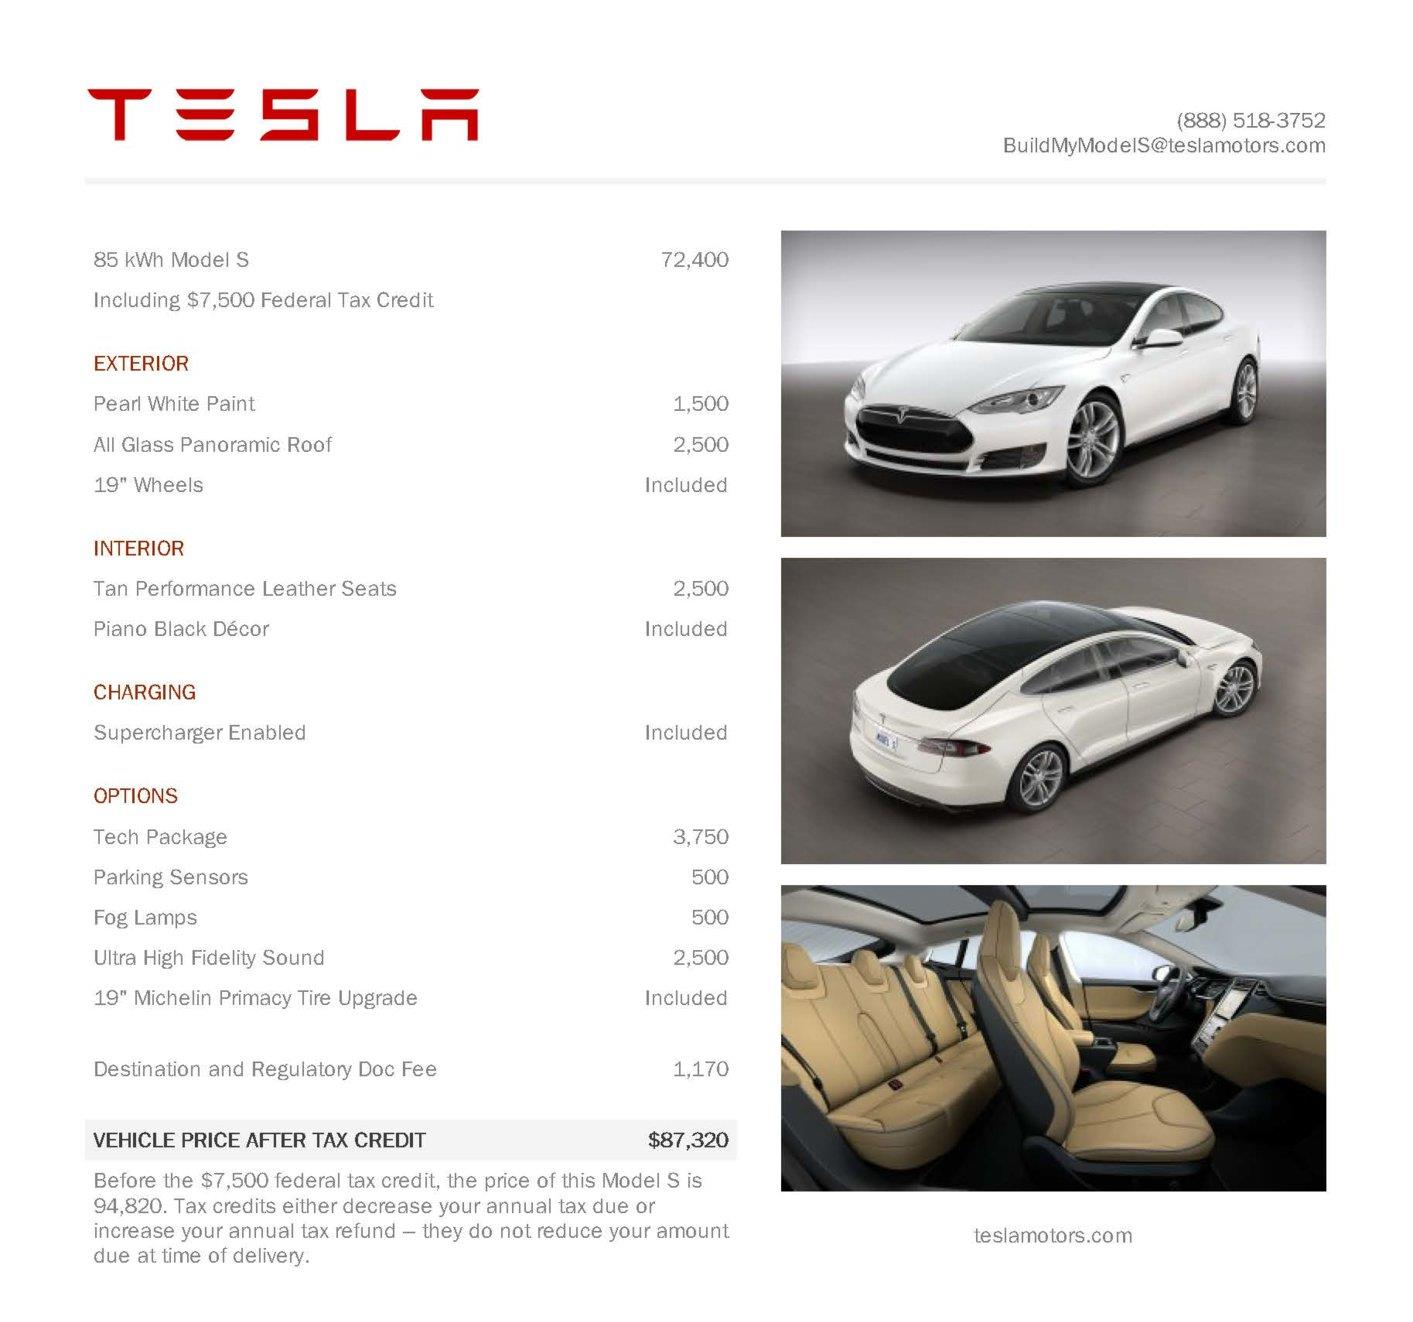 2014 Tesla S85 Options.jpg